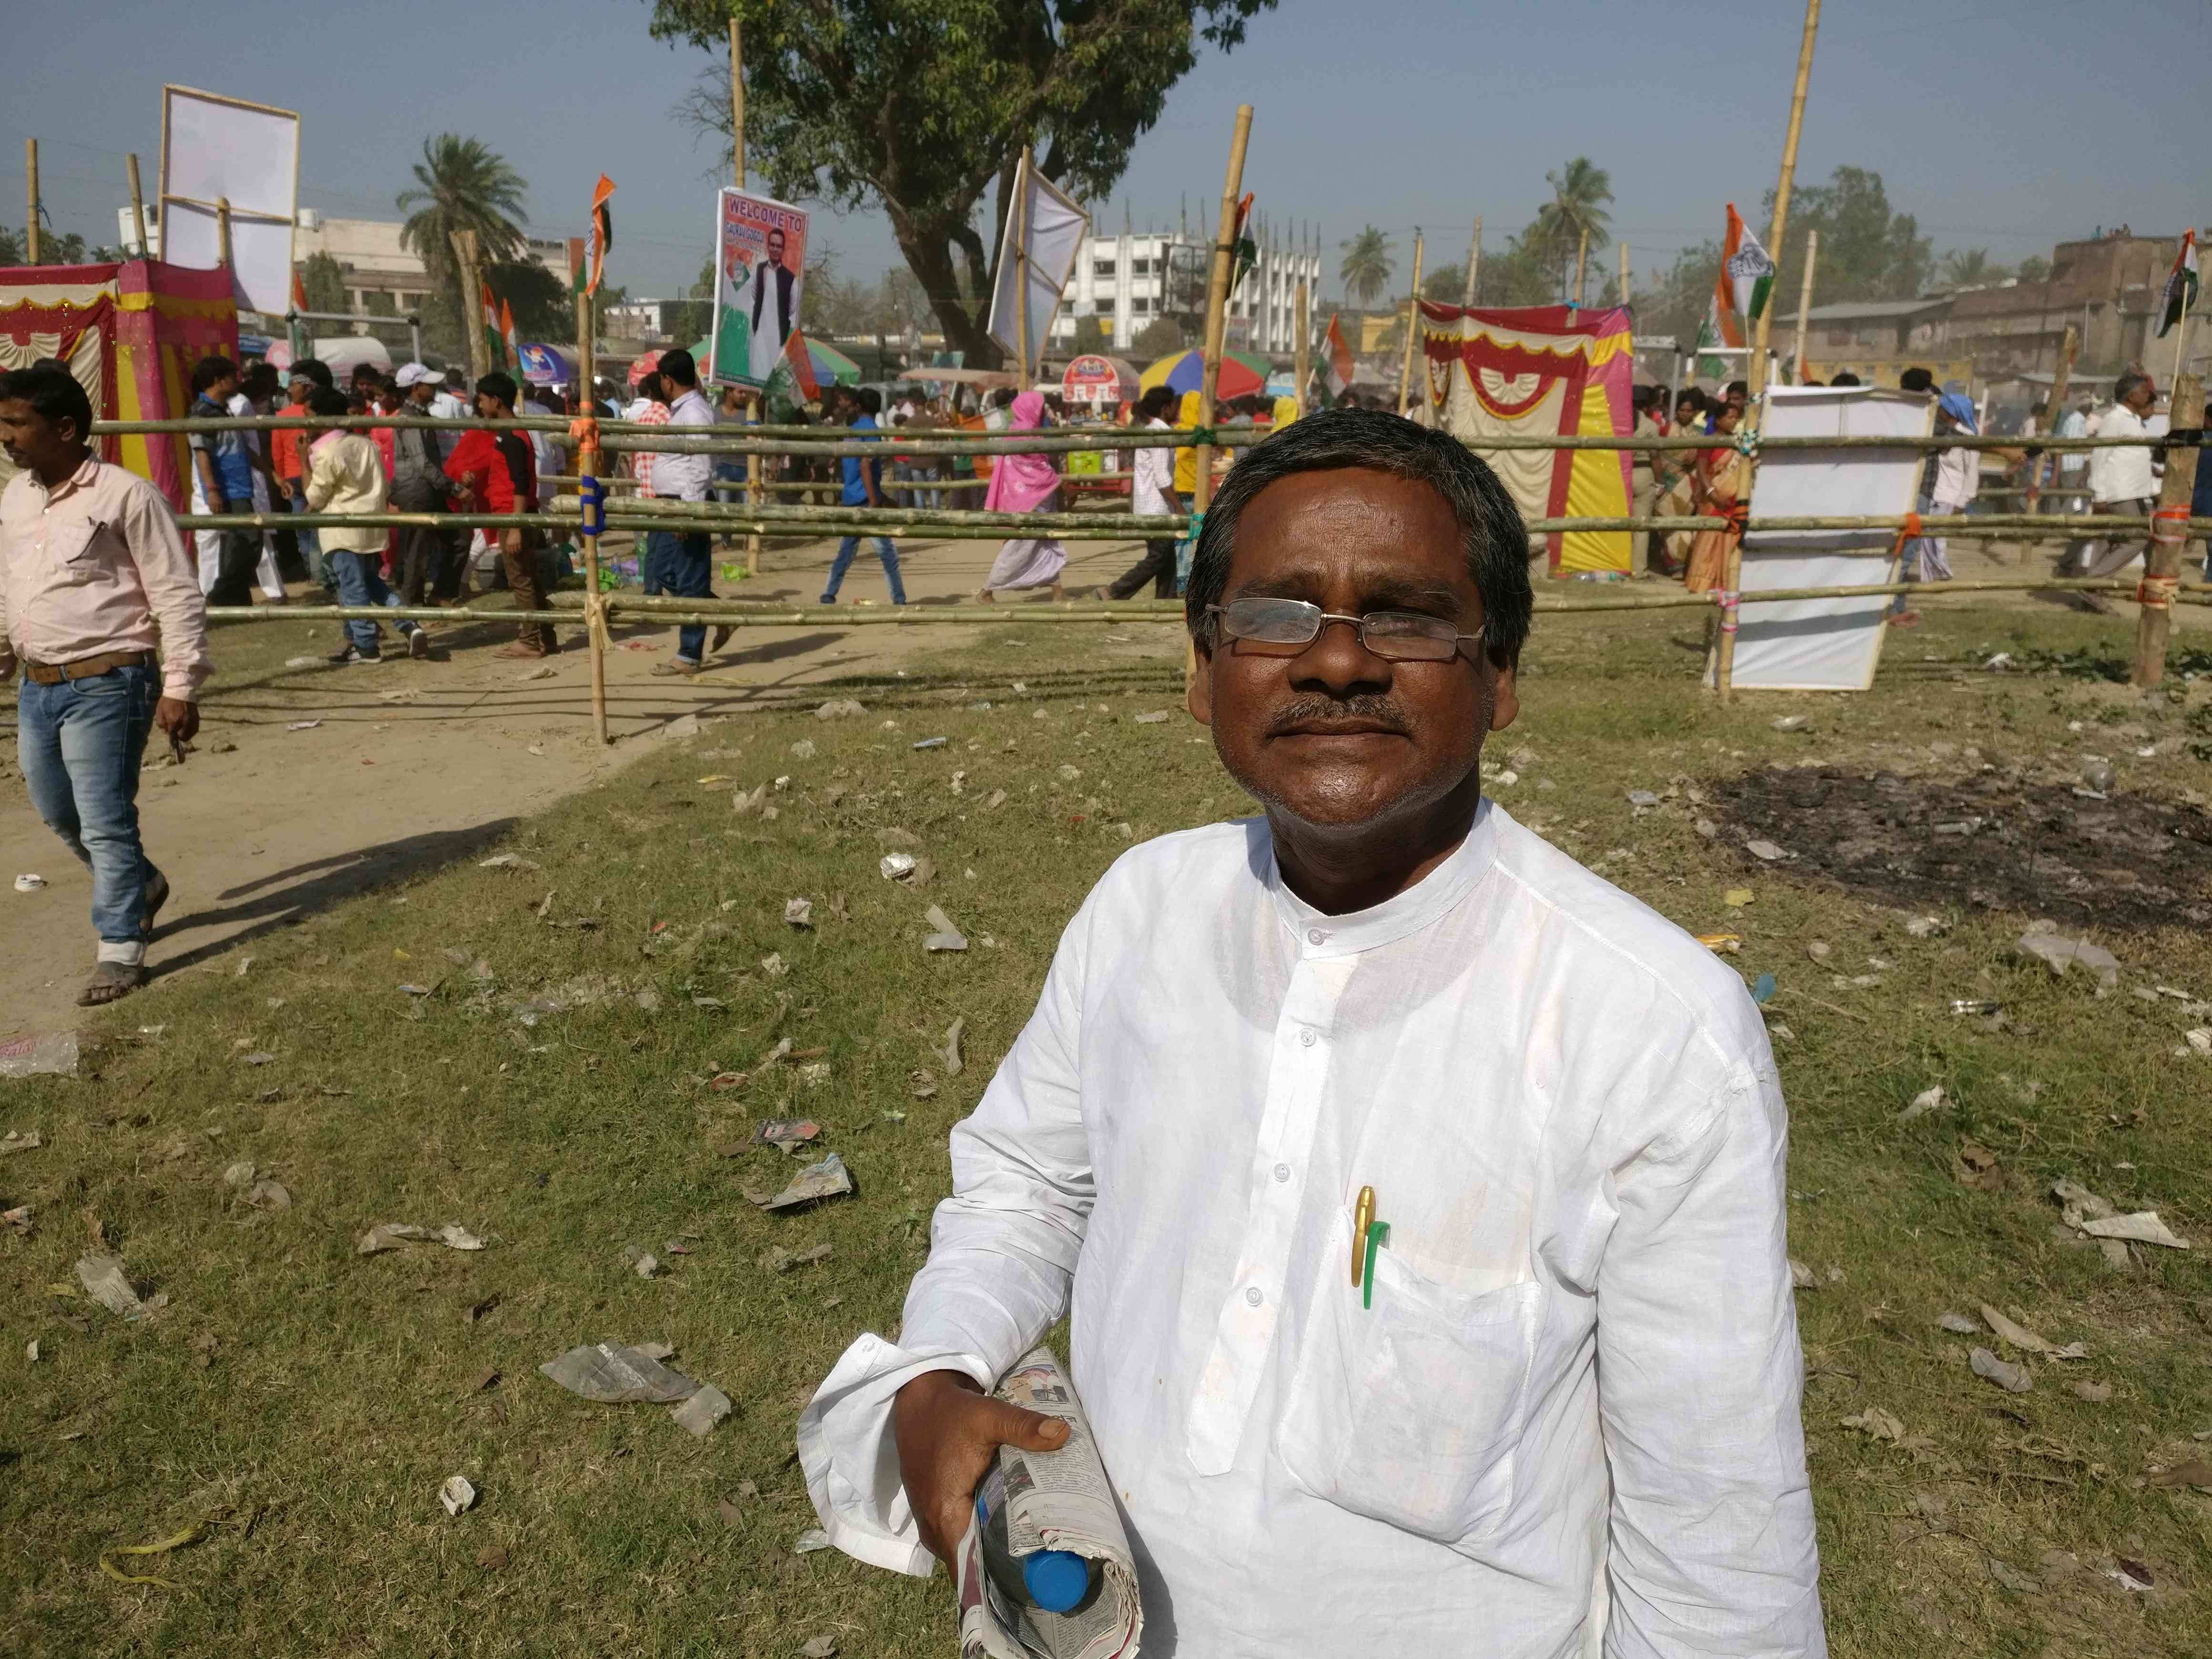 Nirmal Saha is a loyal Congress supporter and will continue the family tradition of voting for the hand. Photo credit: Shoaib Daniyal